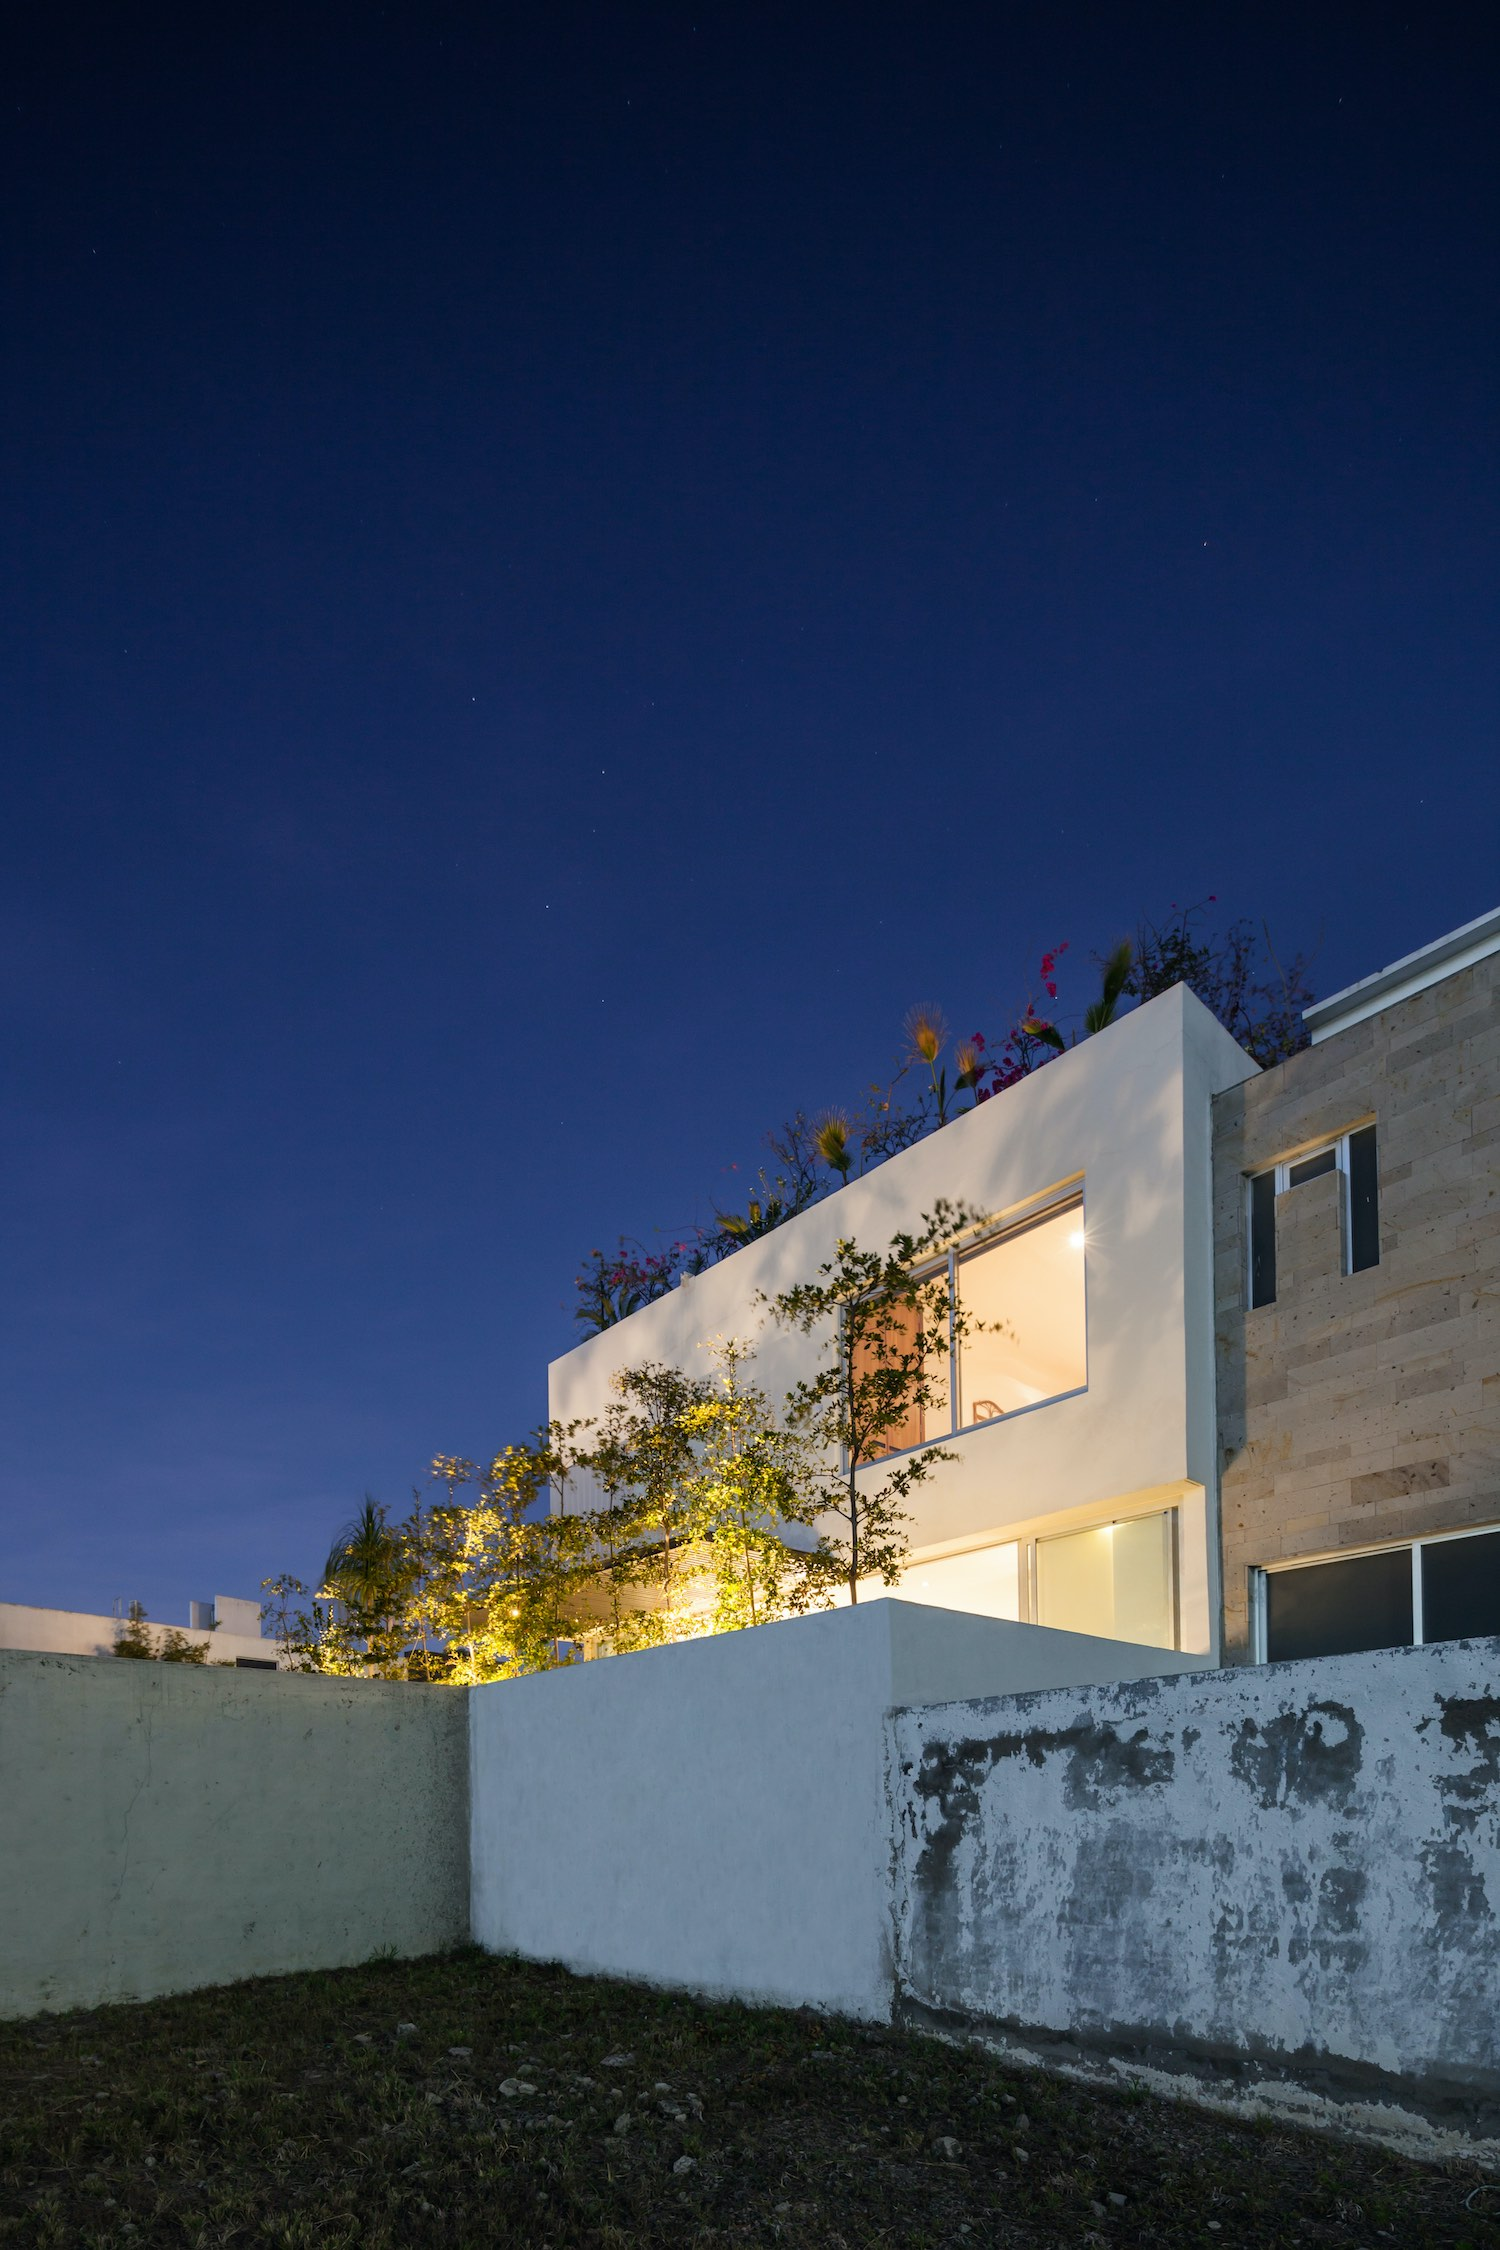 225 House in Jalisco, Mexico by 21 Arquitectos